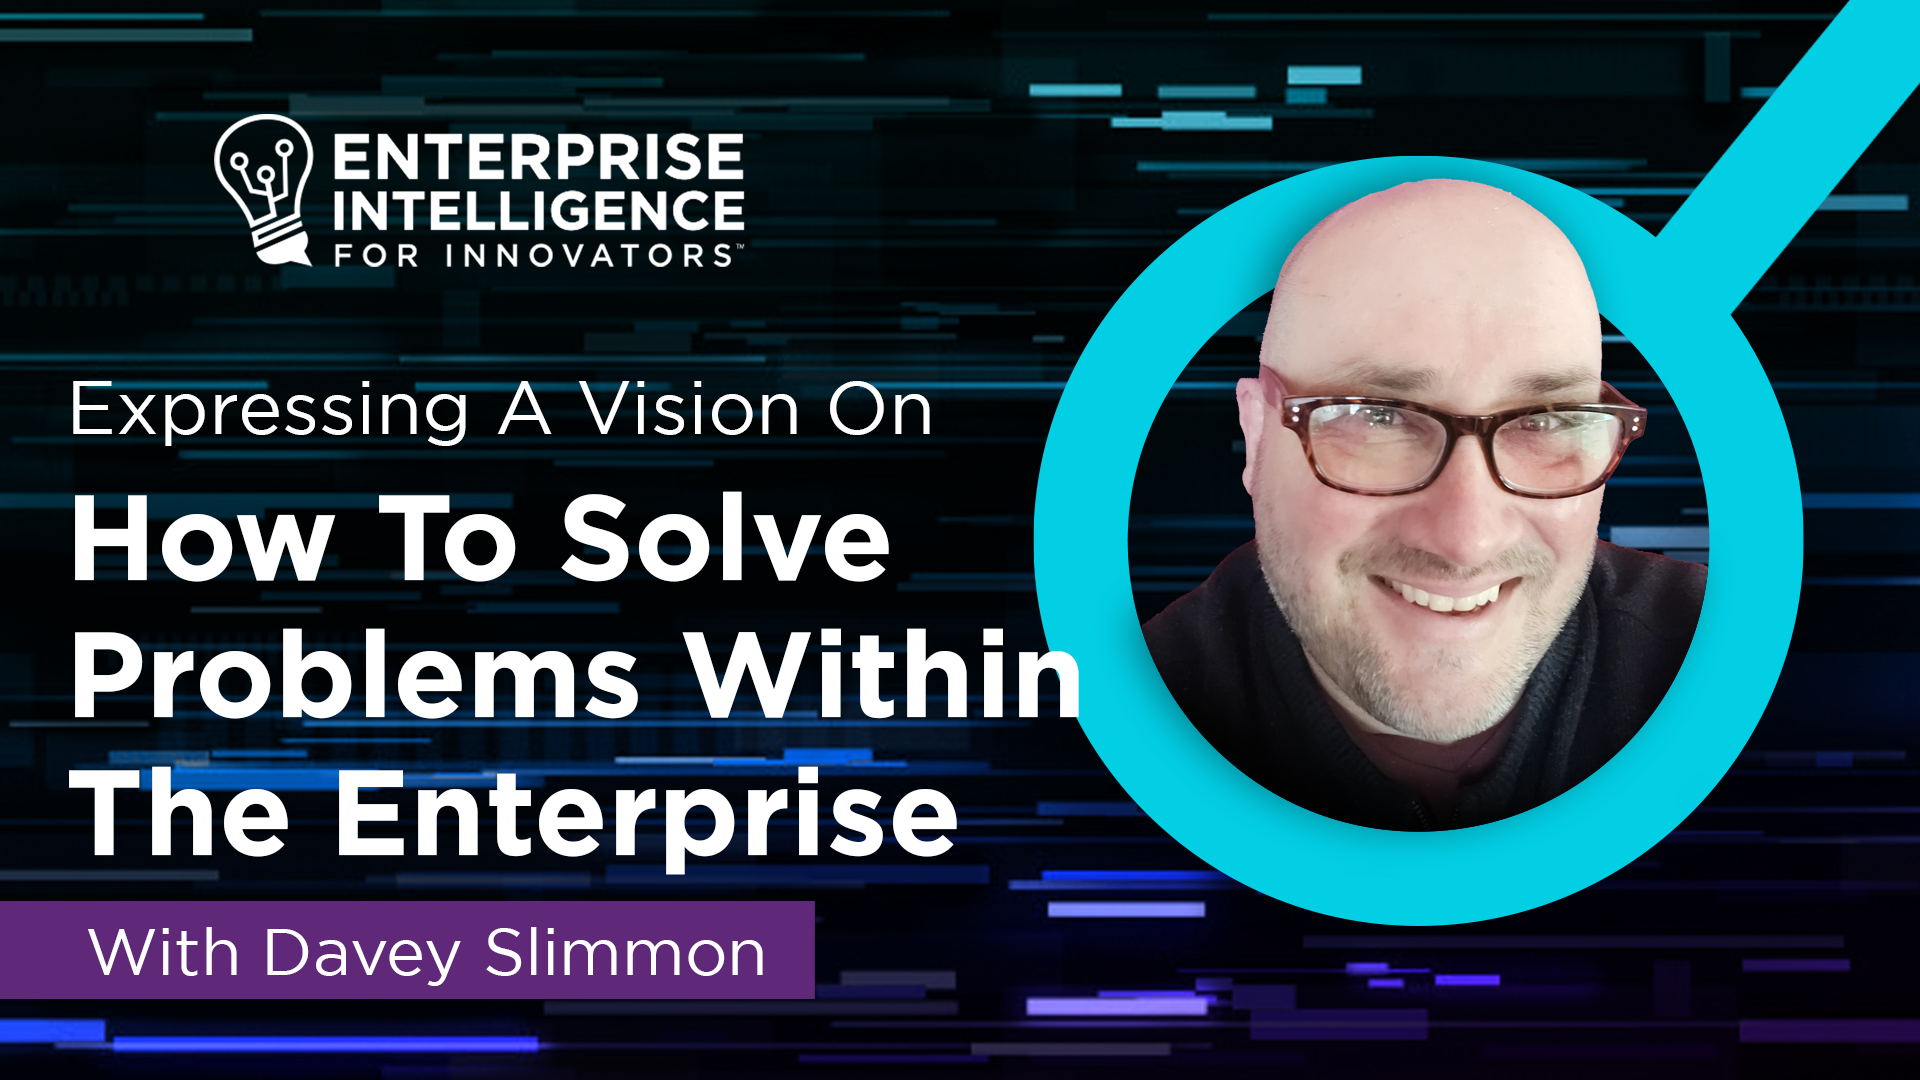 Episode 4: Dave Slimmon, Technical Product Manager at Shinydocs